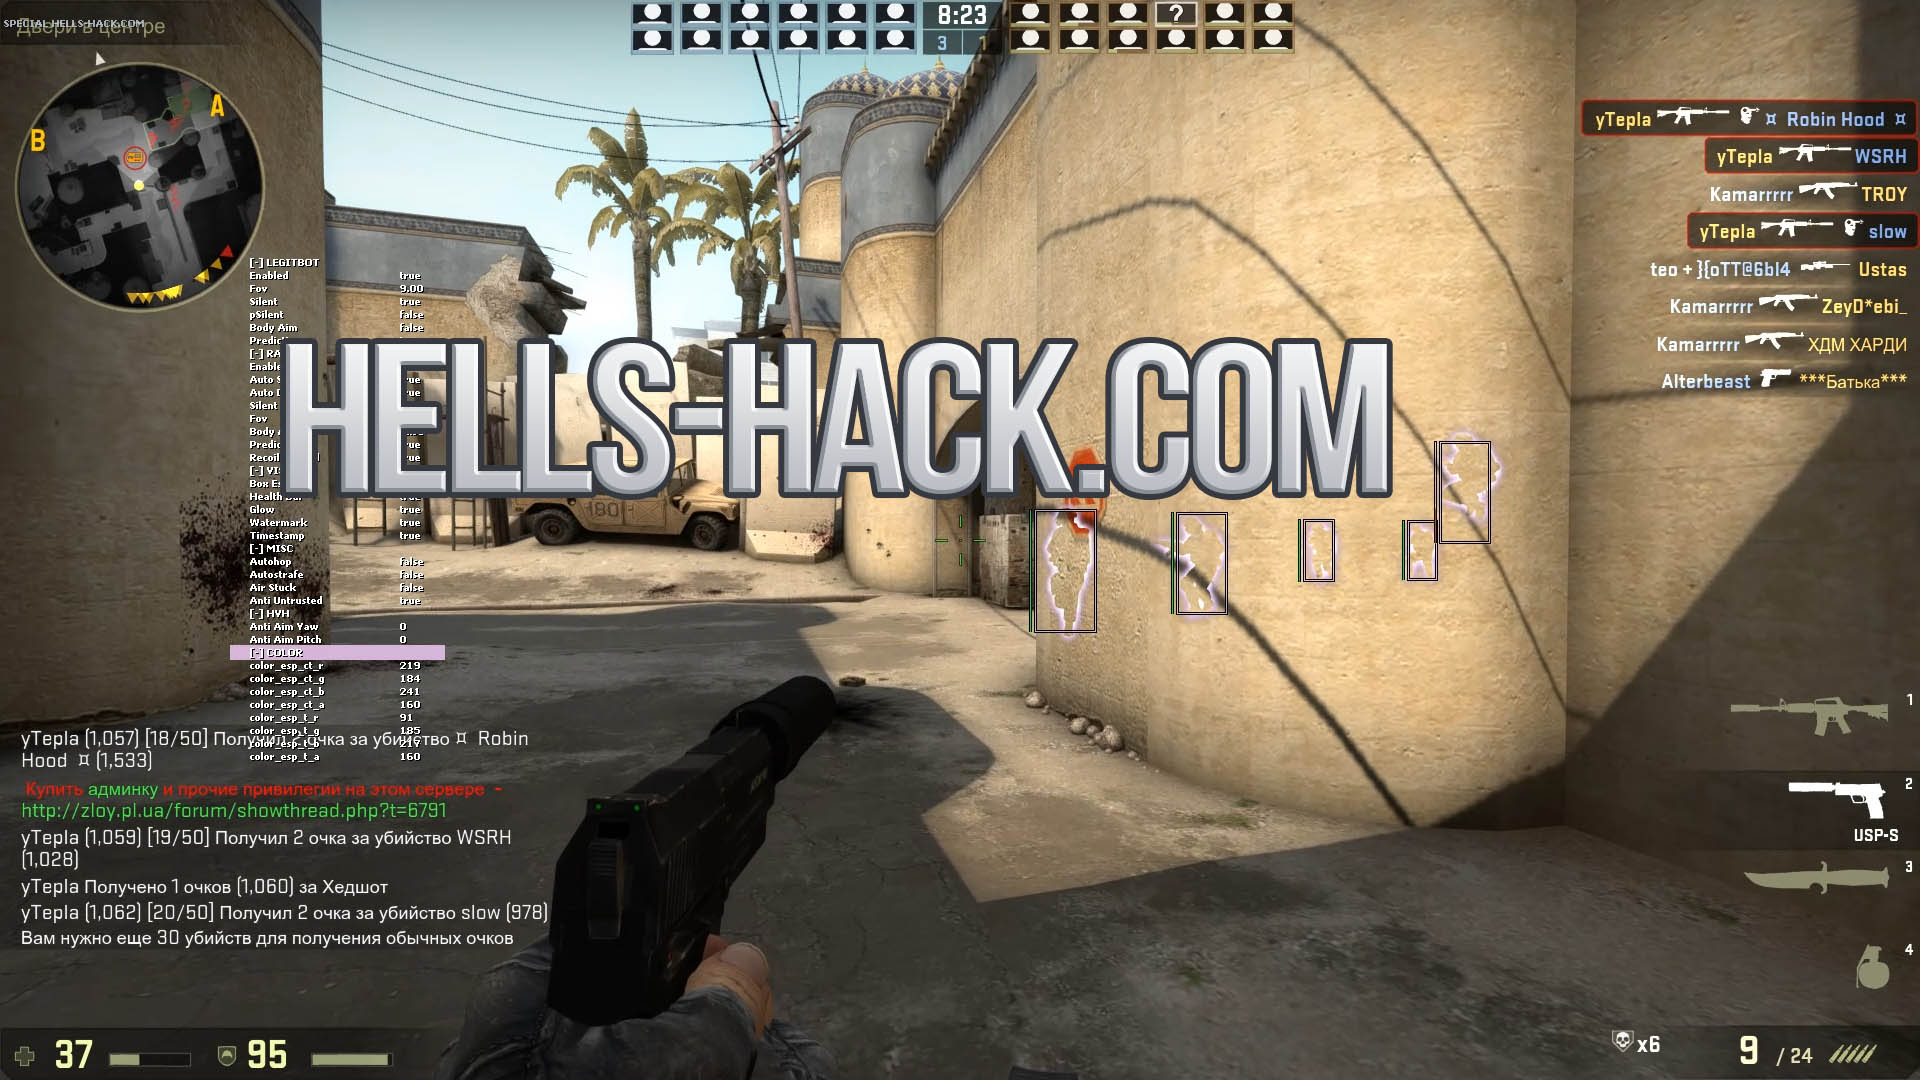 2 Jun - 6 min - Uploaded by CSGO HACKS Download: brozex-dvl